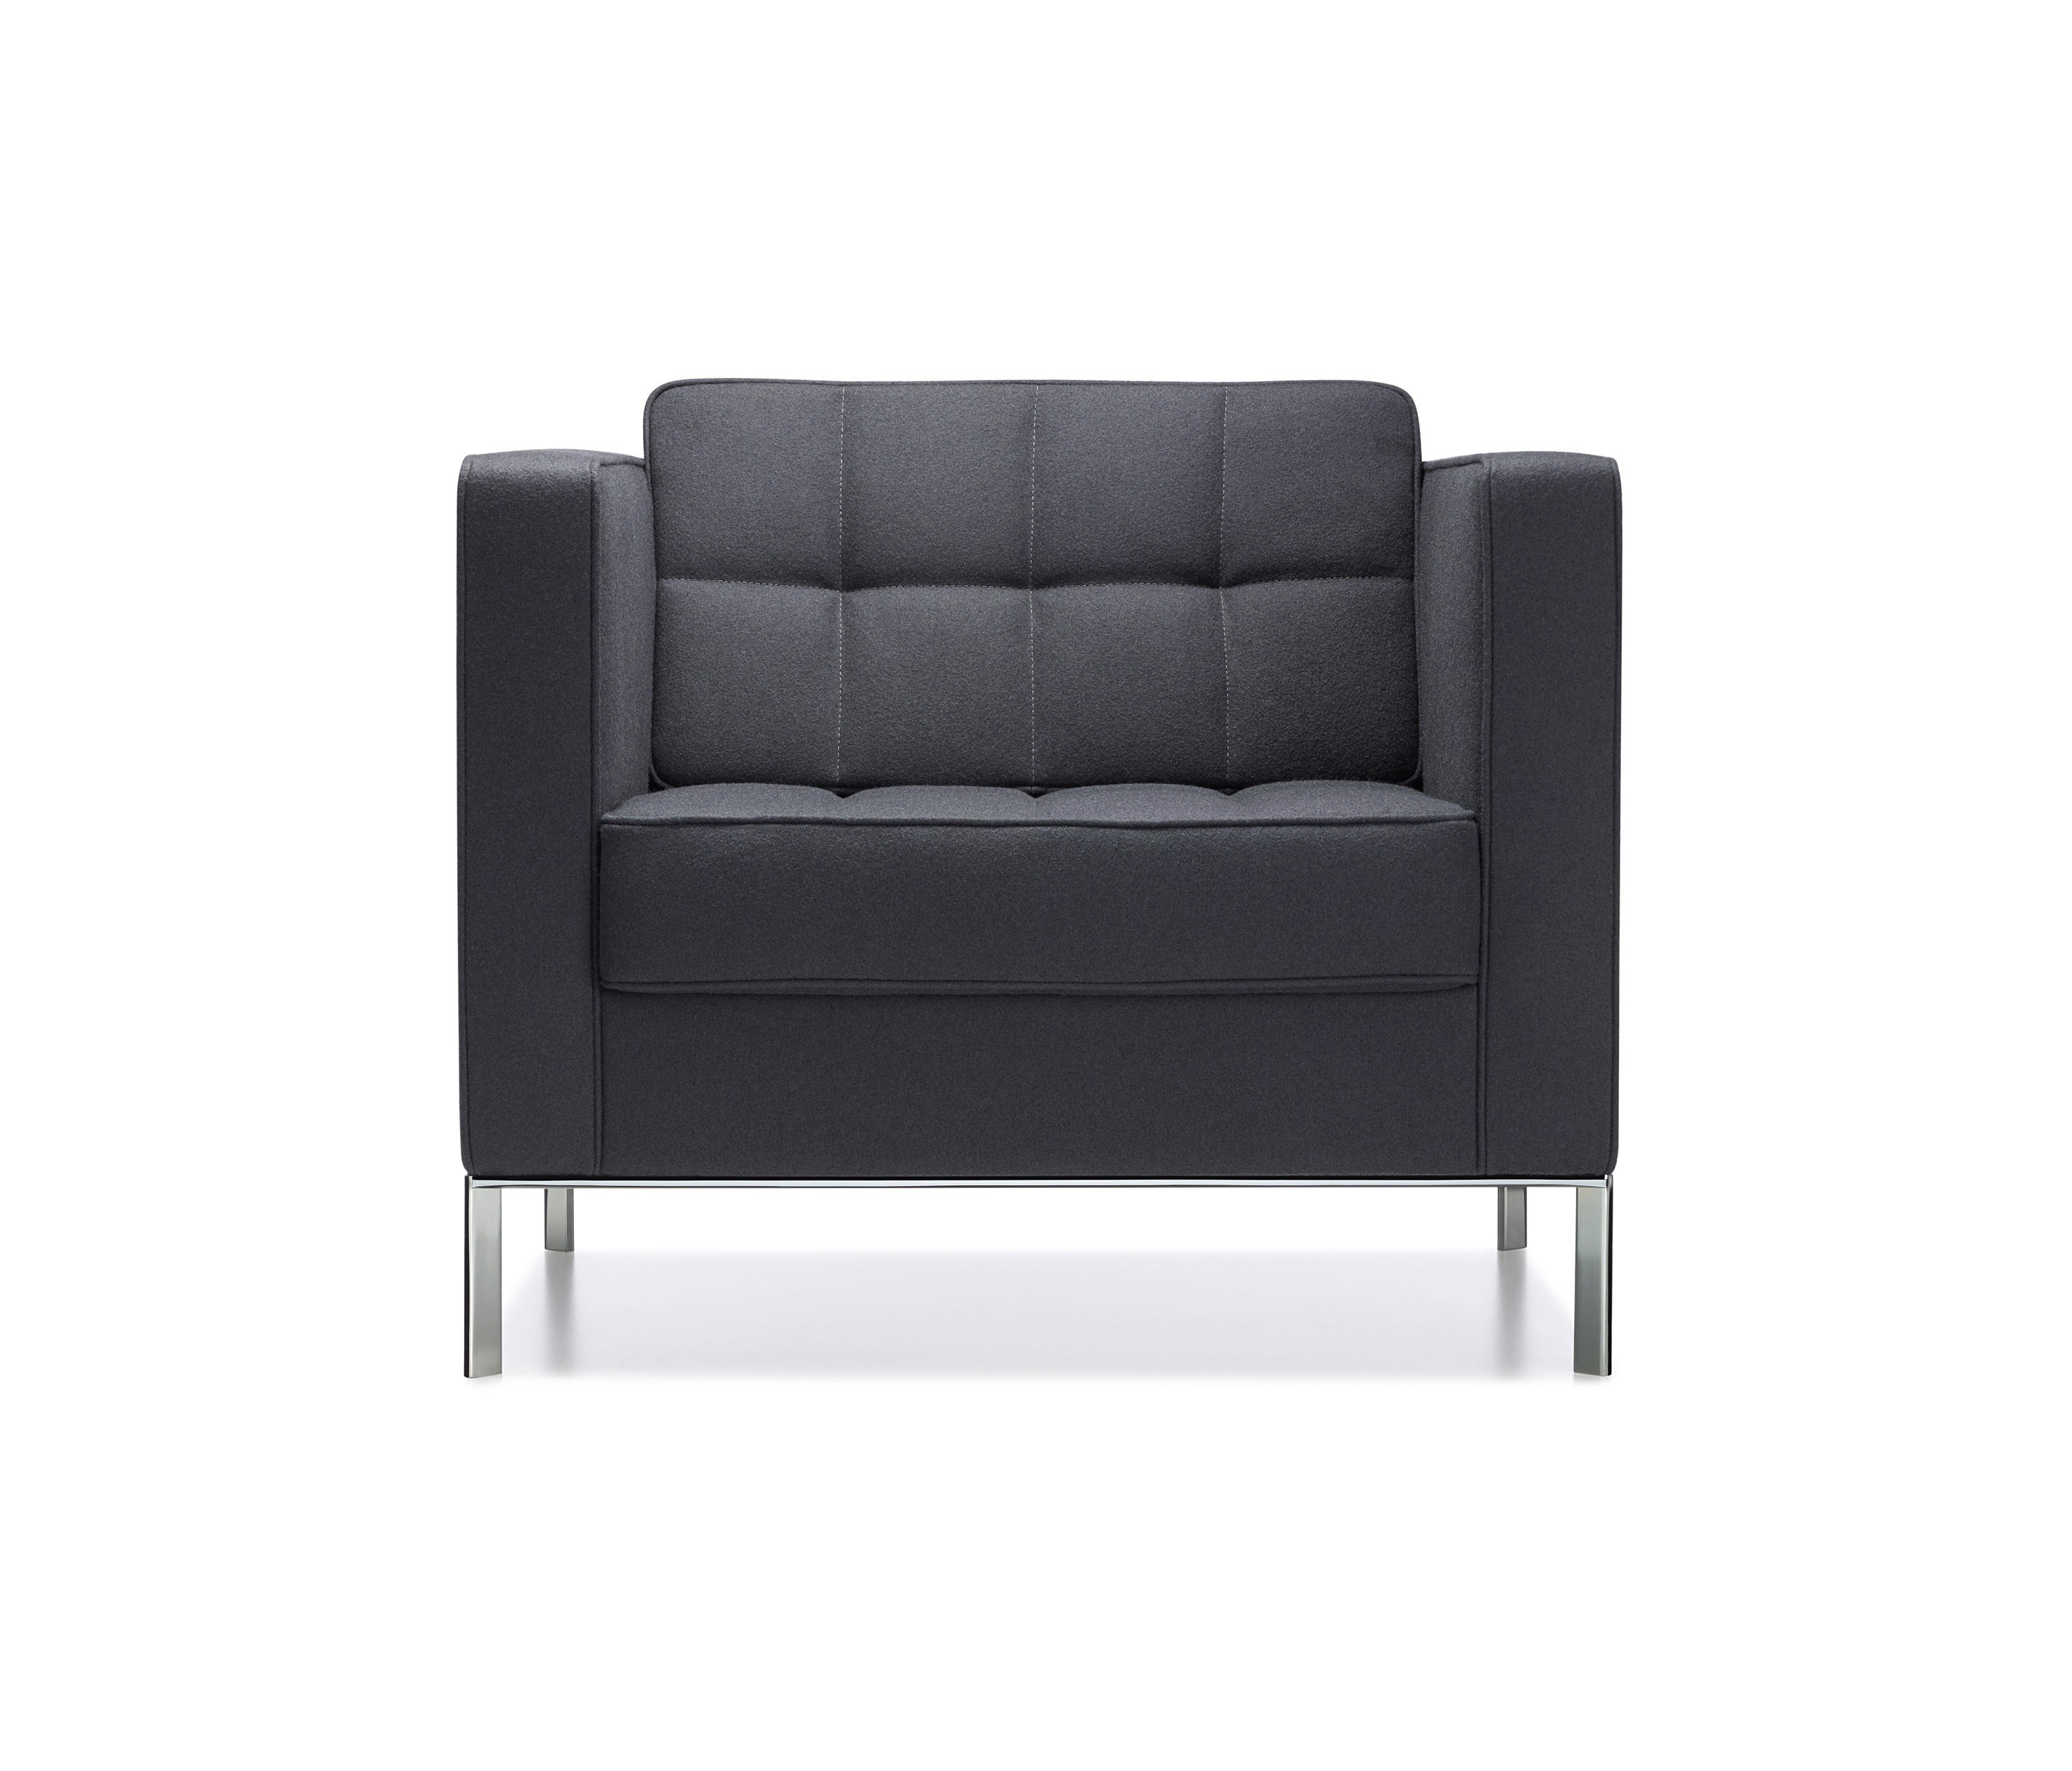 KM Tufted Tuxedo 59711 By Keilhauer | Lounge Chairs ...